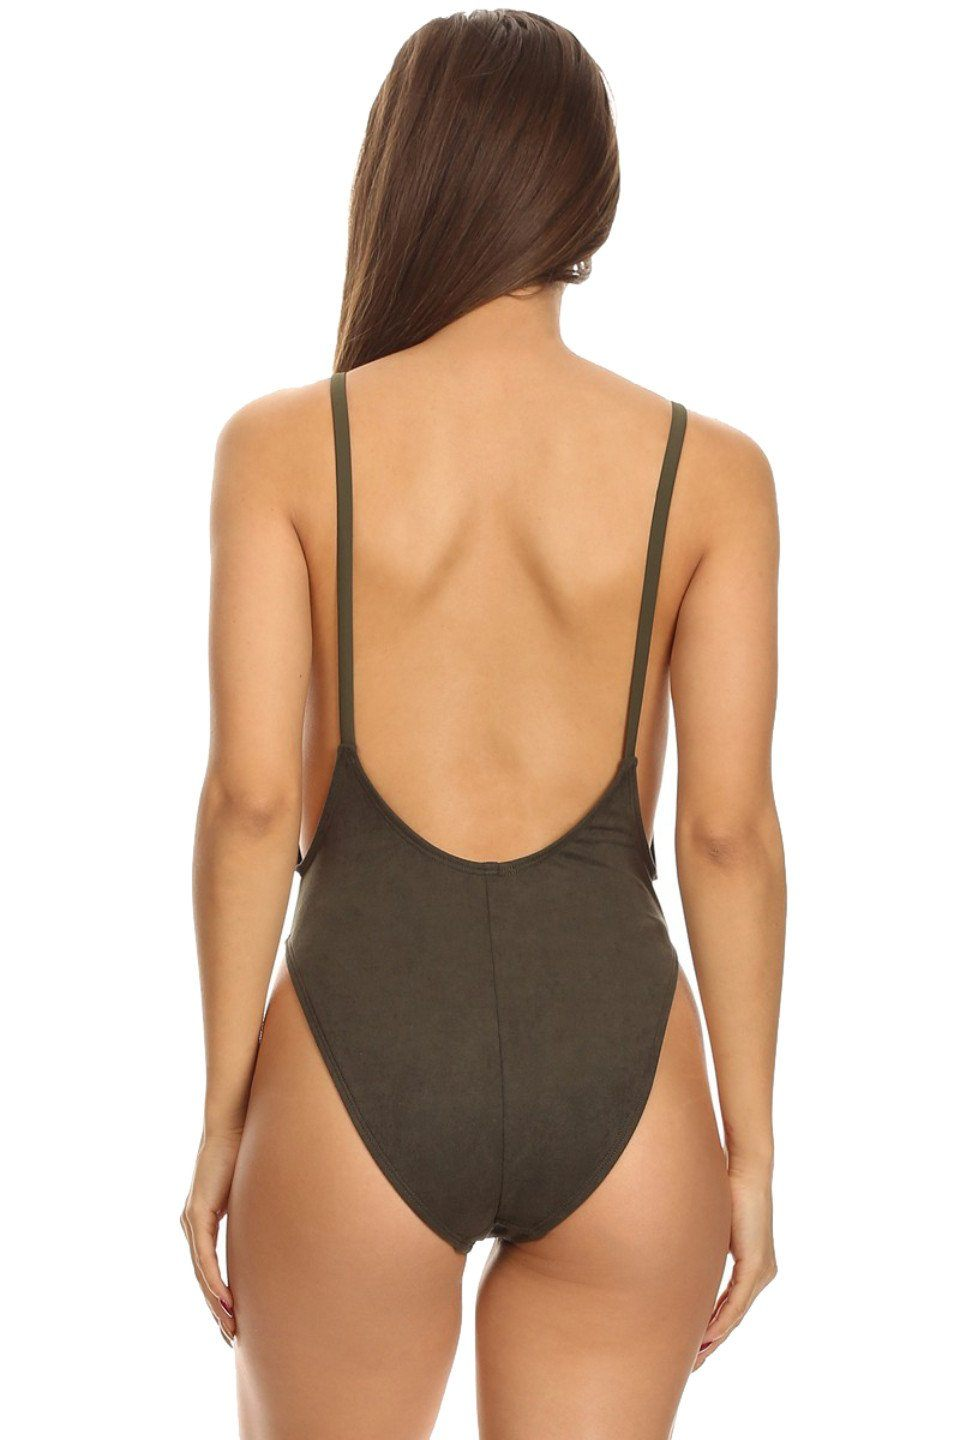 Olive Suede High Cut Vintage Swimsuit Back - Dippin' Daisy's Swimwear